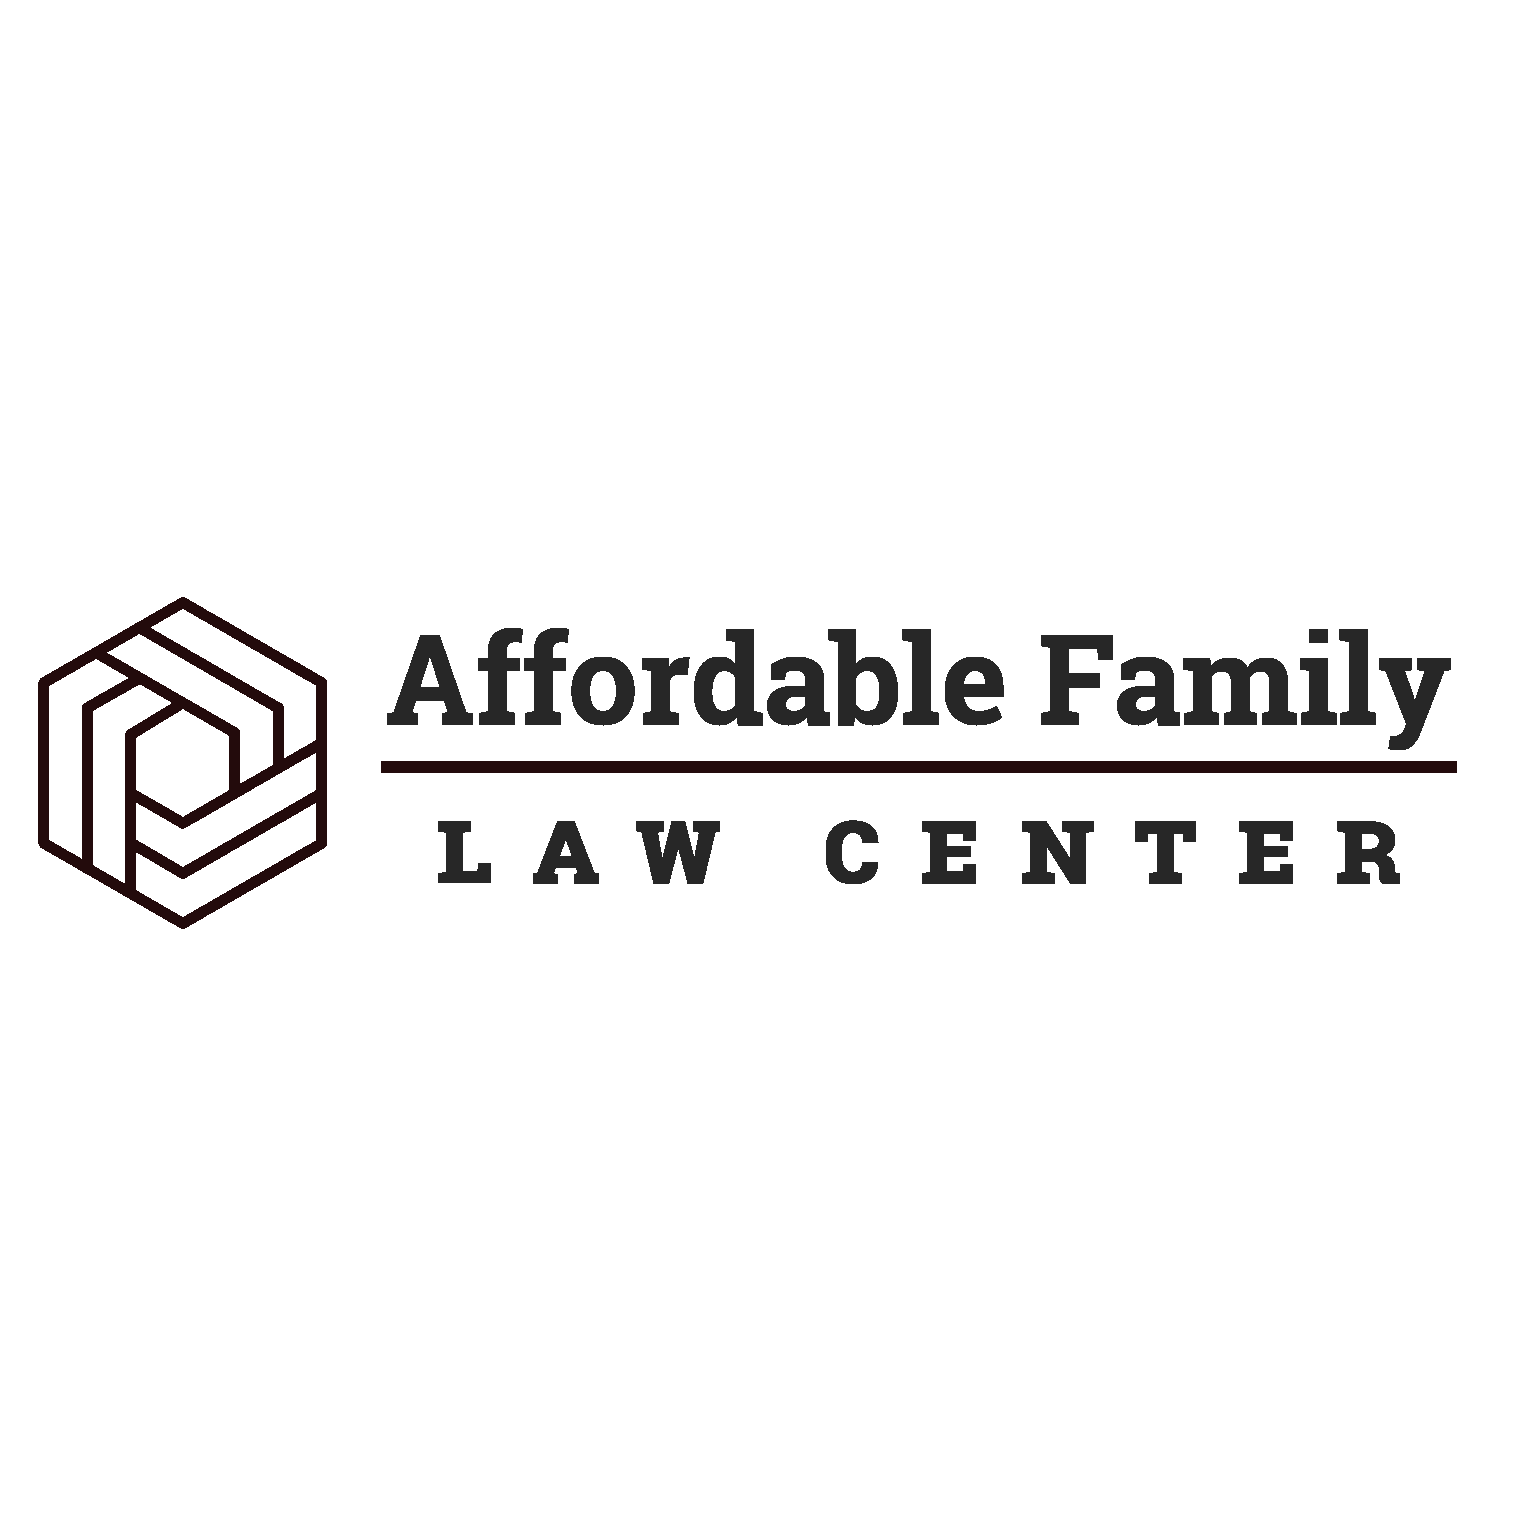 Affordable Family Law Center